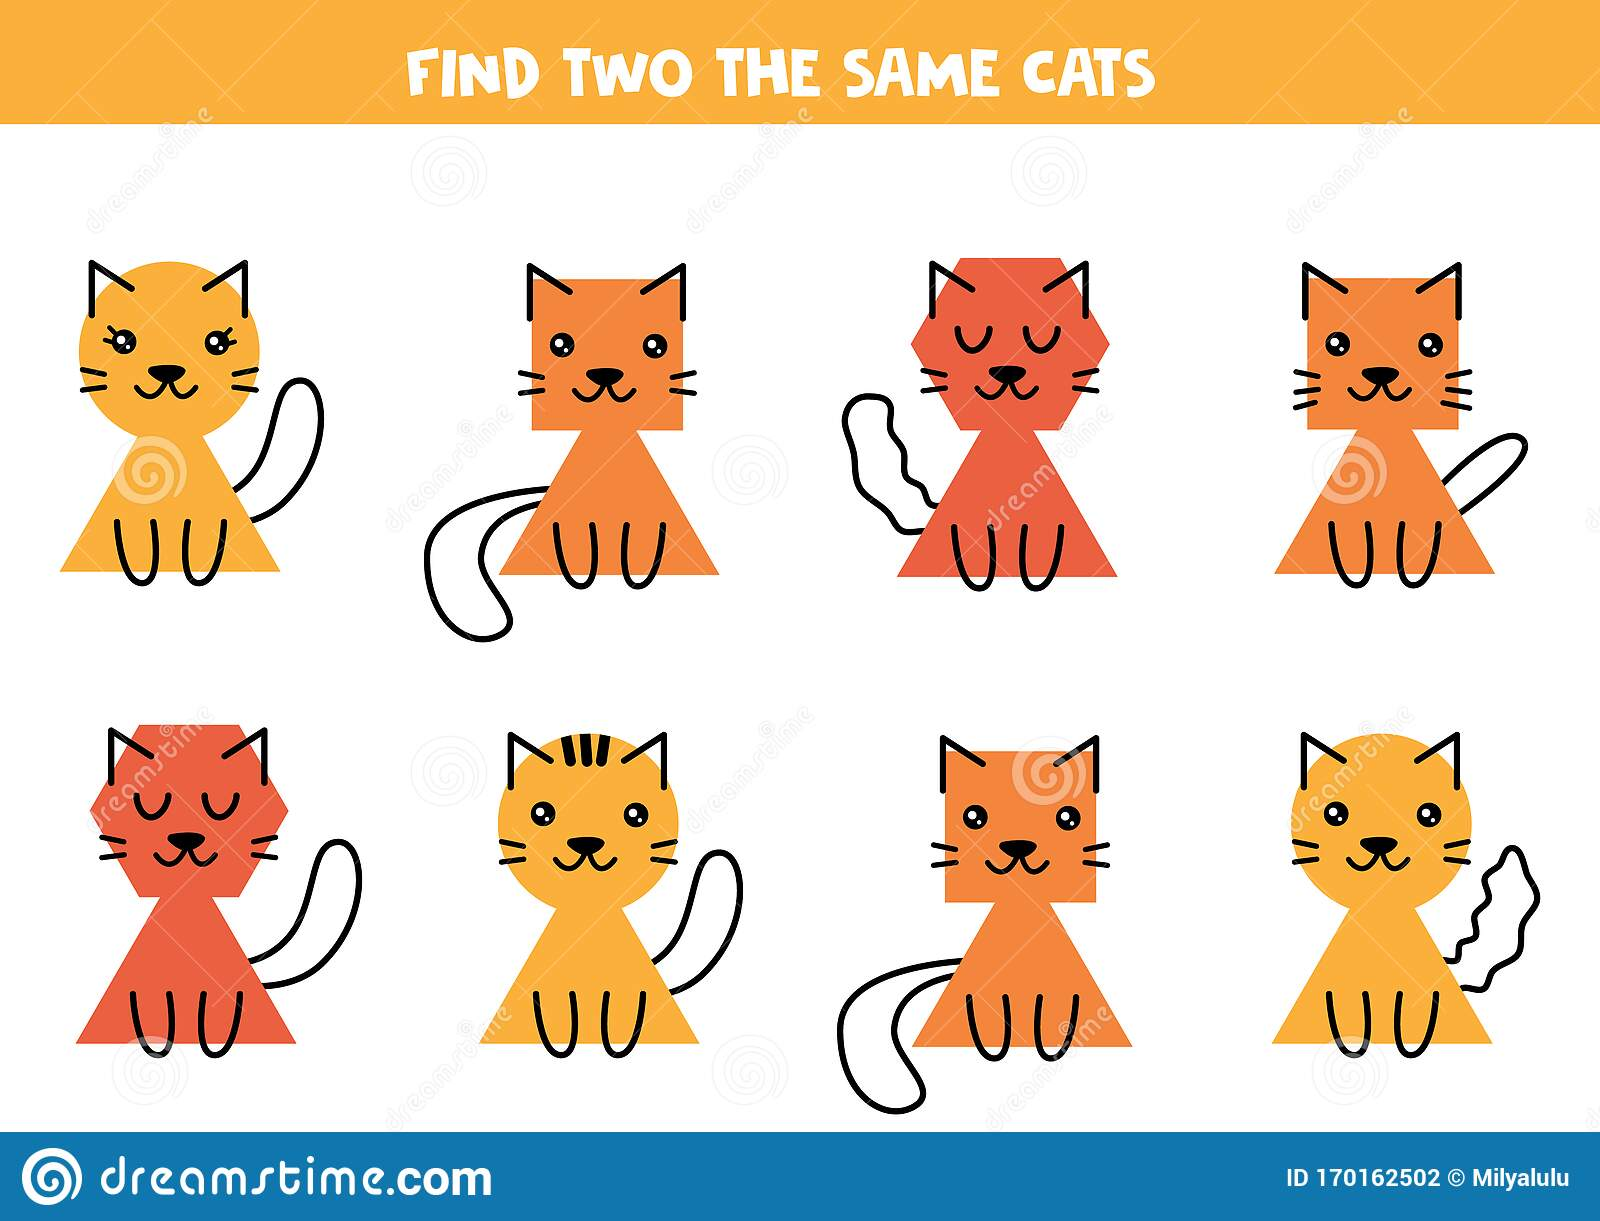 Find Two The Same Cute Cats Educational Worksheet For